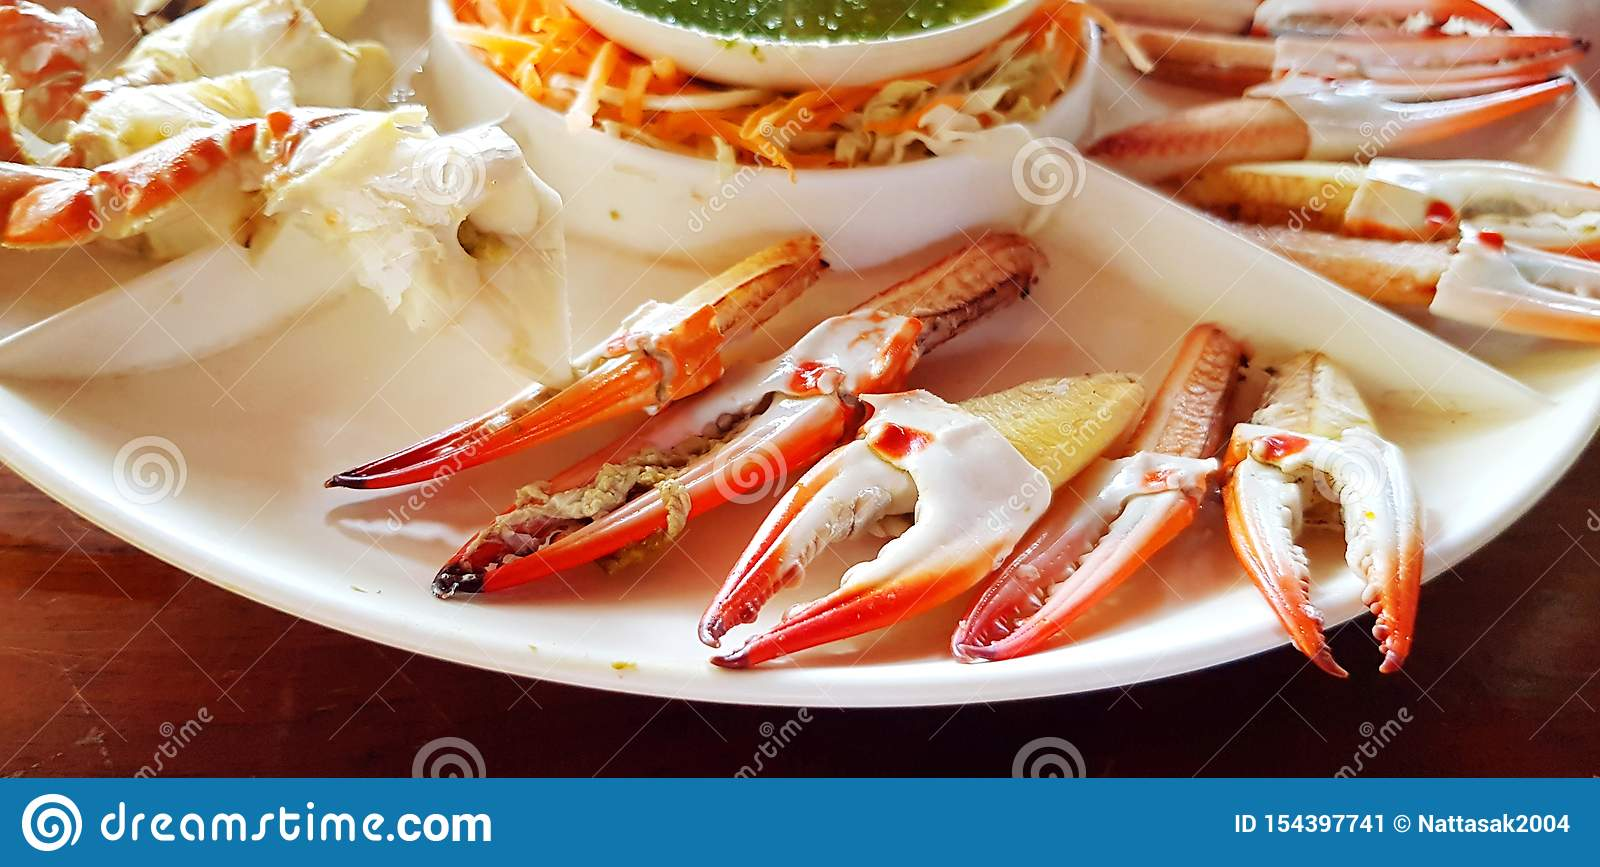 Close Up Fresh Crab Hand Or Leg In White Plate At Seafood Restaurant Stock Image Image Of Dish Part 154397741